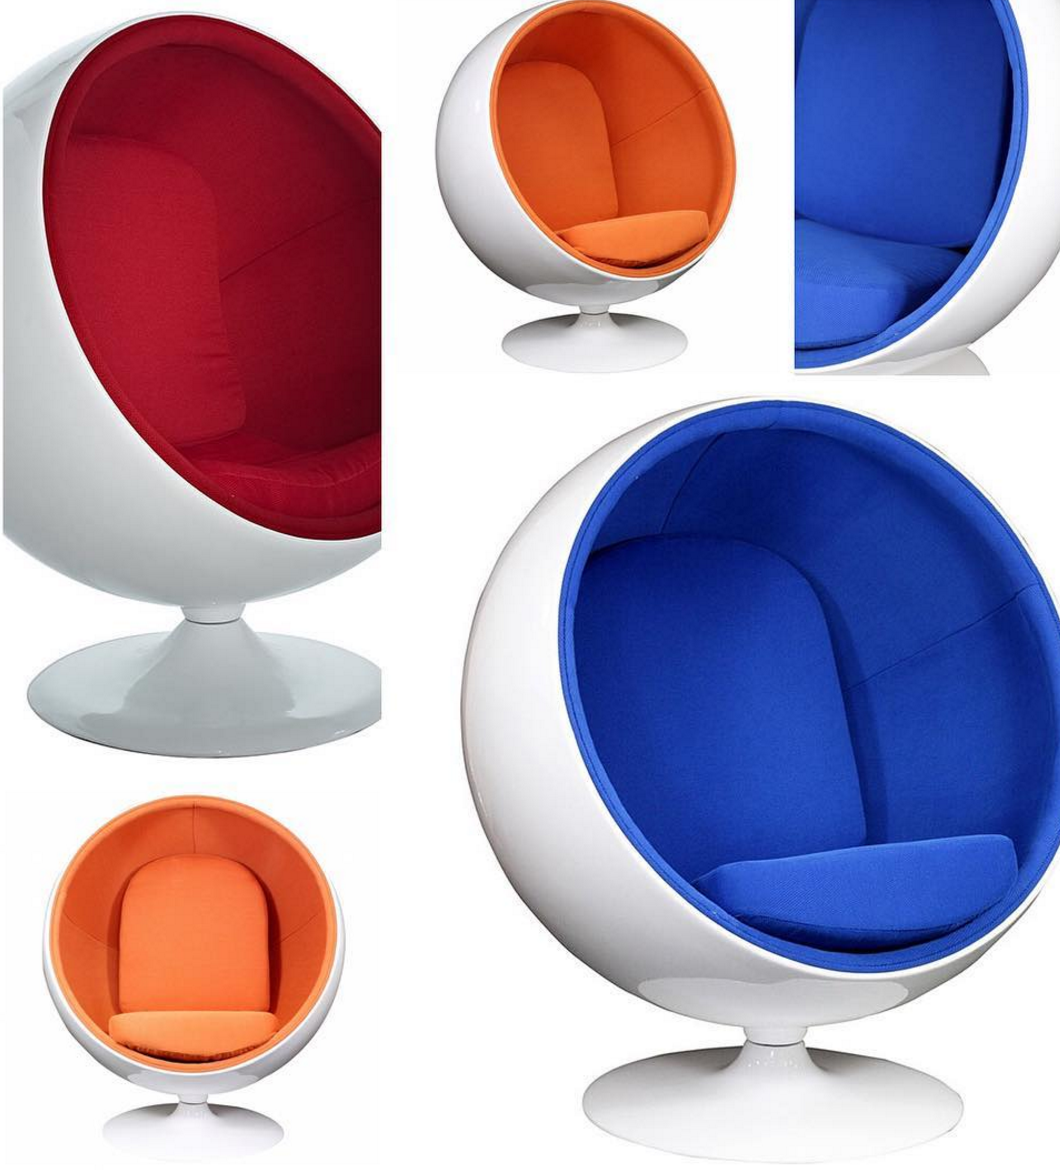 Make A Bold Spin At Your Next Event With Our Unique M.I.B. Lounge Chairs.